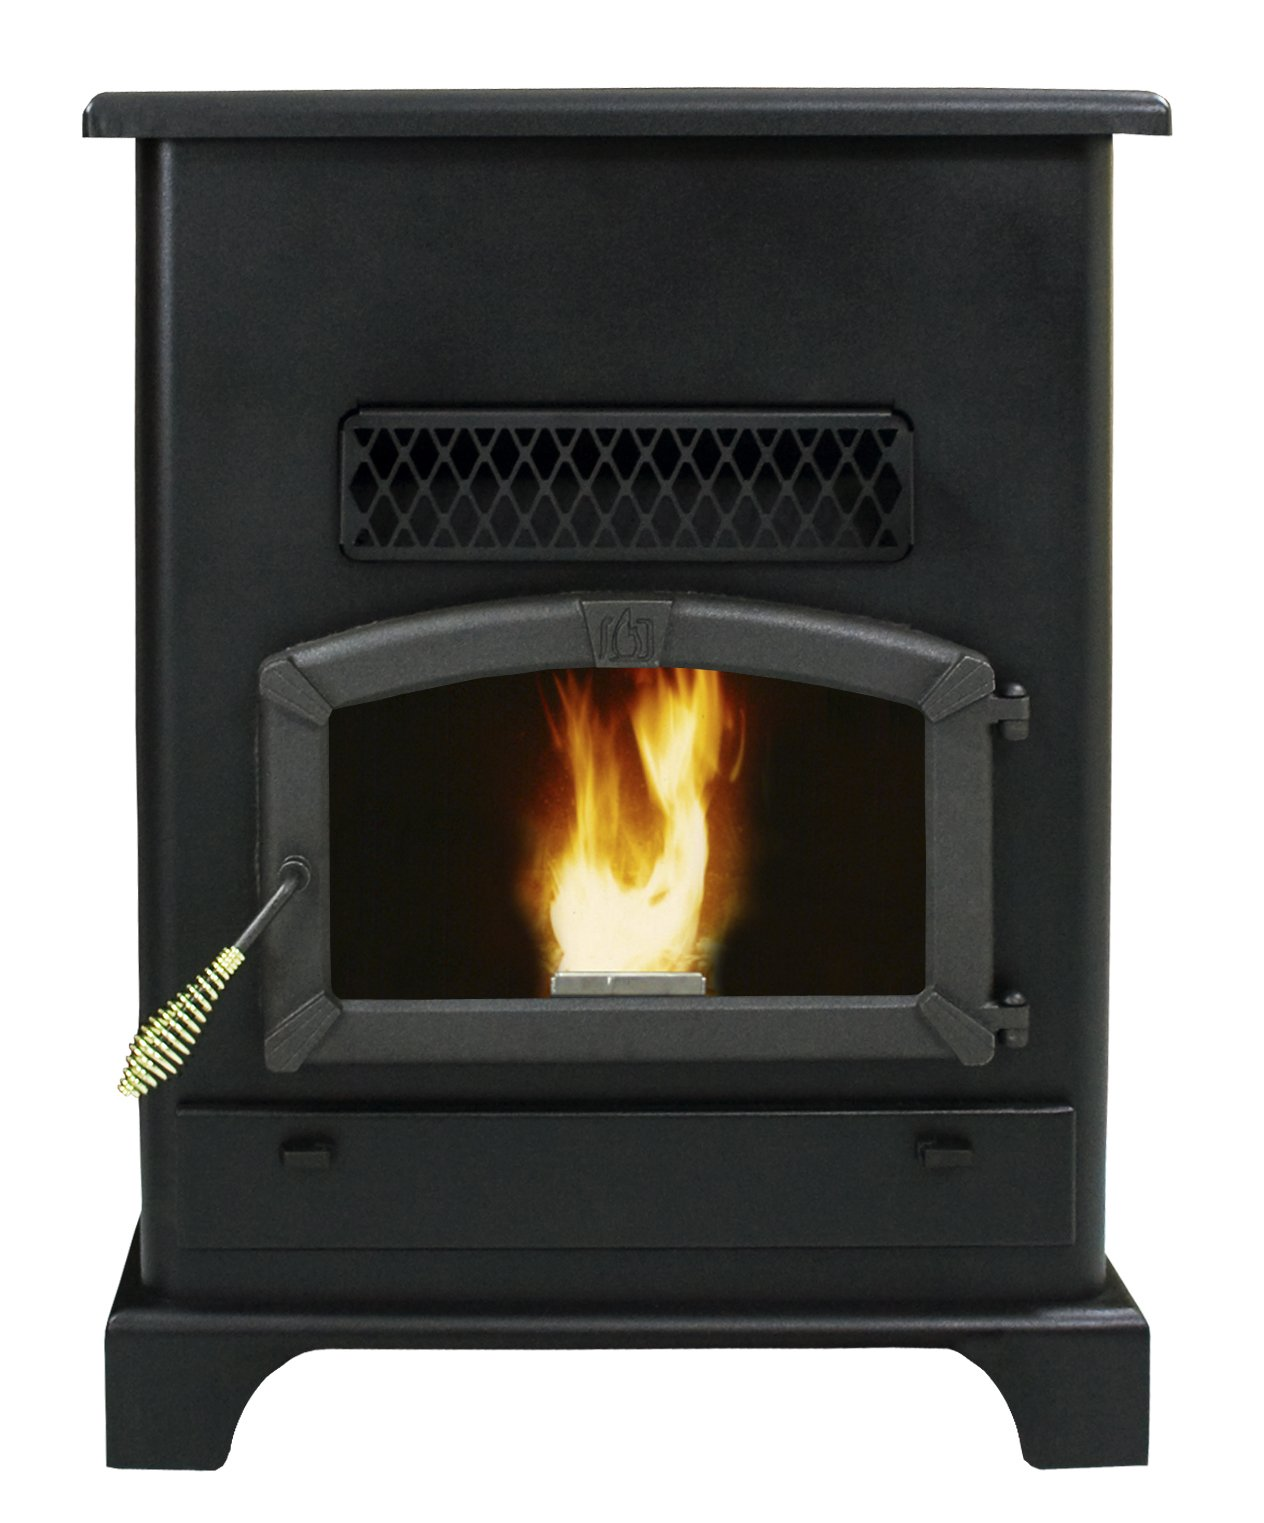 US Stove 5520 Pellet Stove with Ash Pan, Large by US Stove Company